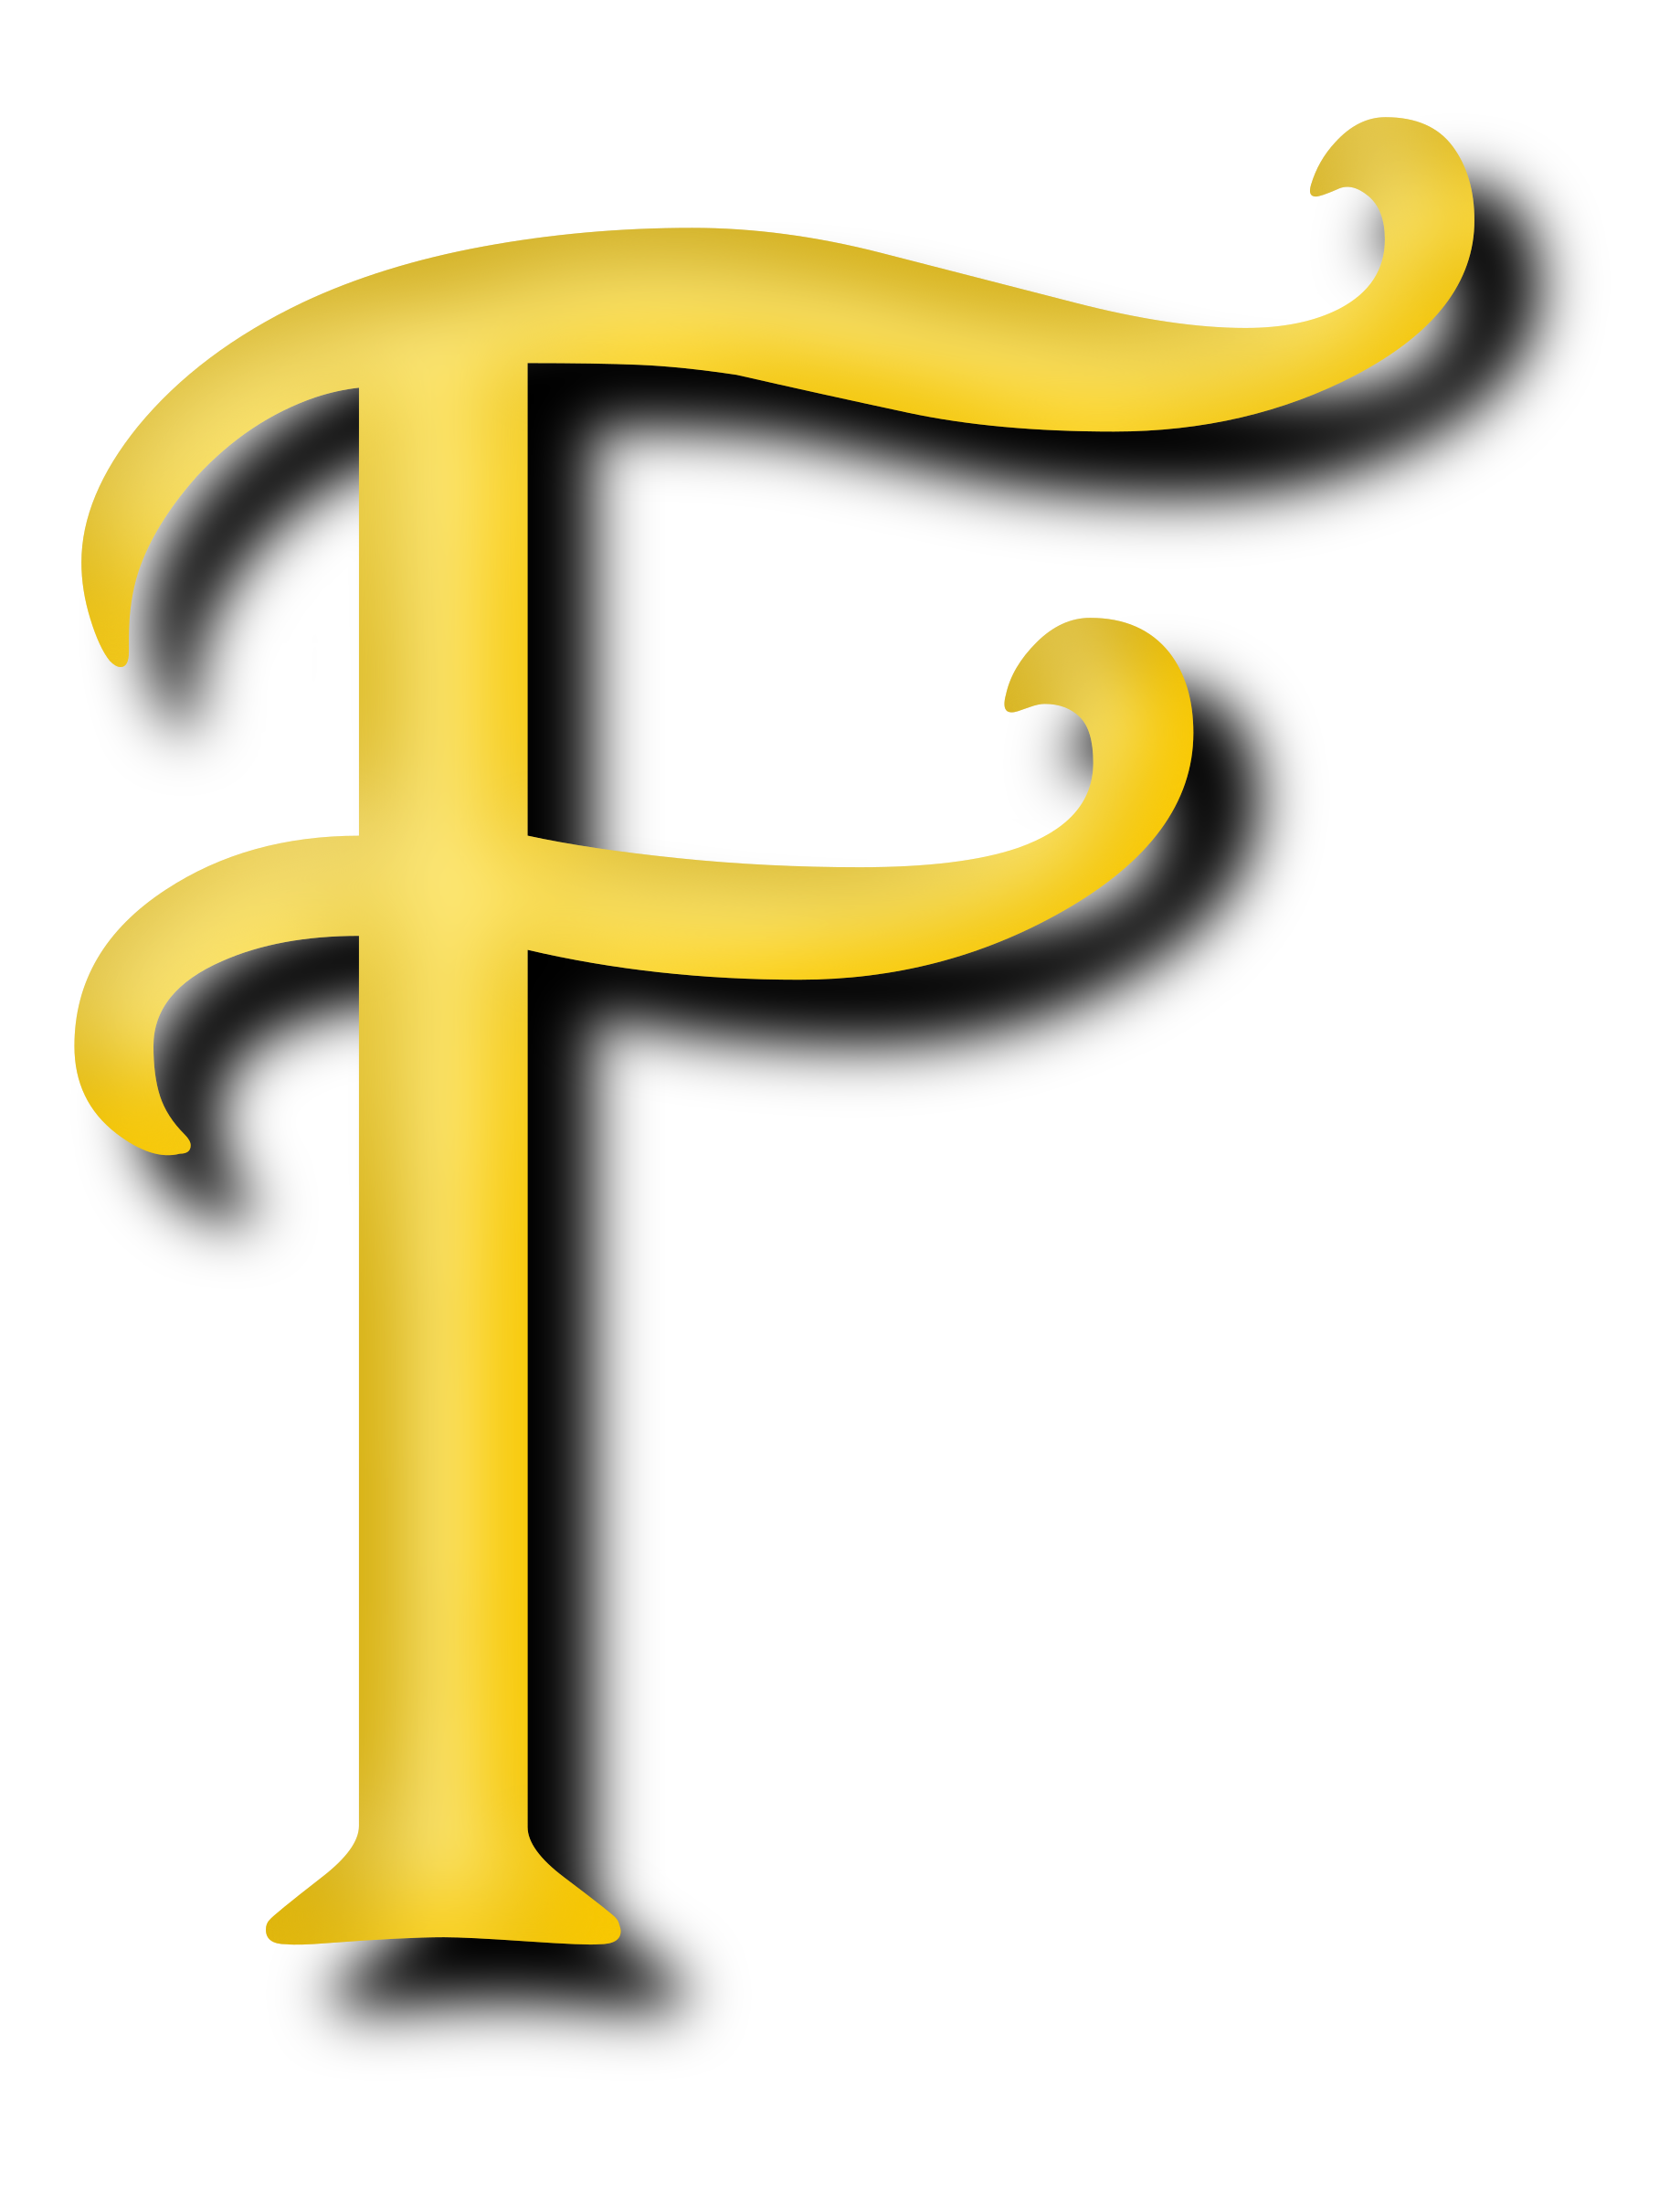 F logo clipart vector library library Letter F vector clipart image - Free stock photo - Public Domain ... vector library library